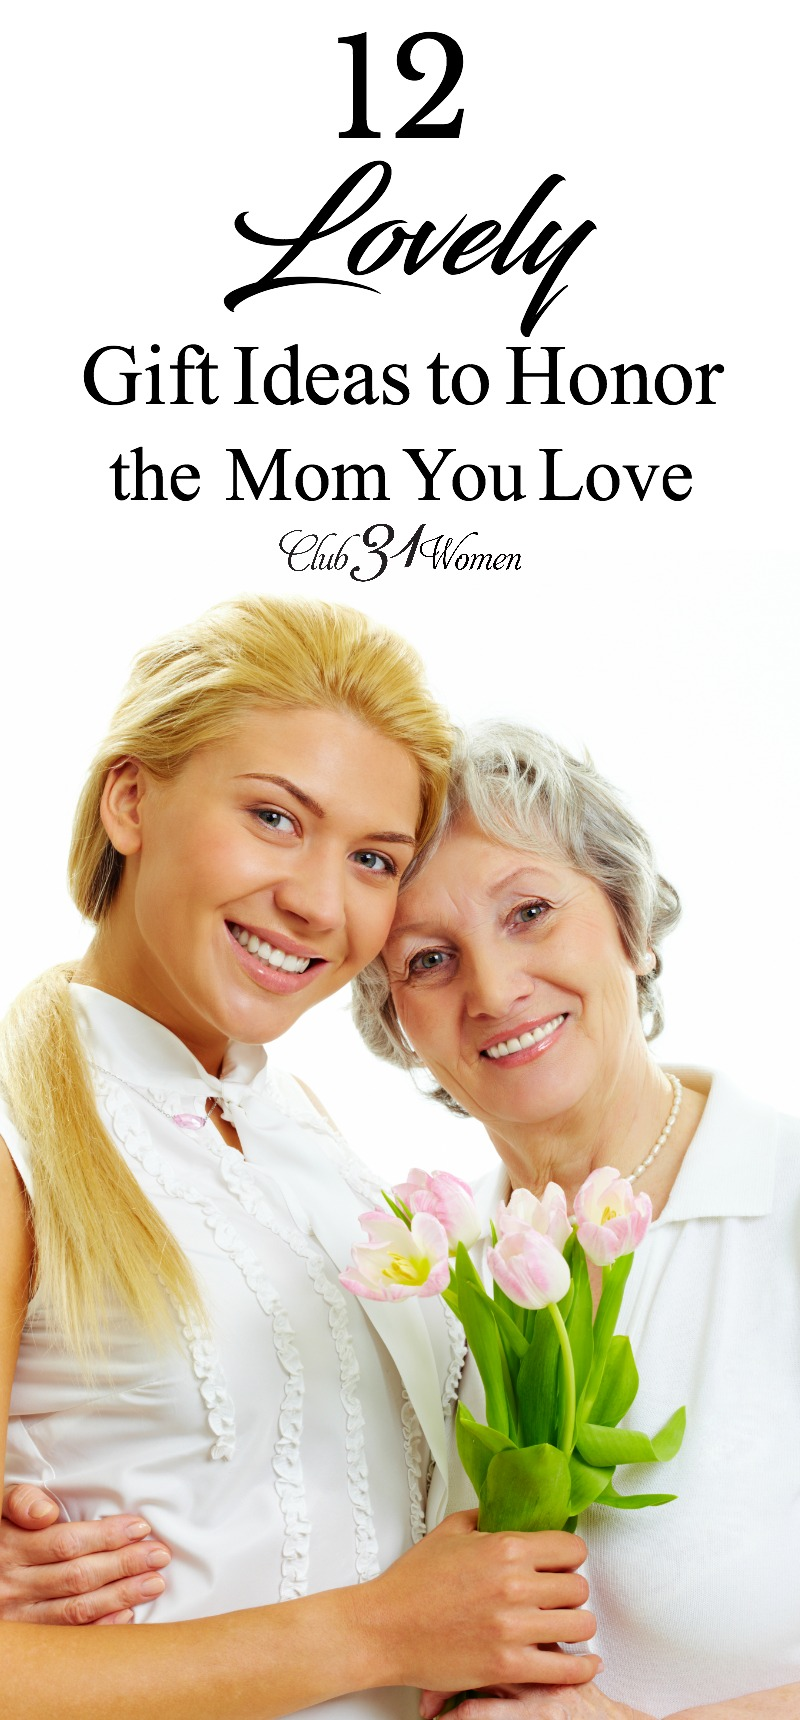 Looking for a meaningful (but not expensive) gift ideas to bless the mom(s) in your life? Here are some lovely gift ideas to let her know how she's loved, valued, and honored! via @Club31Women